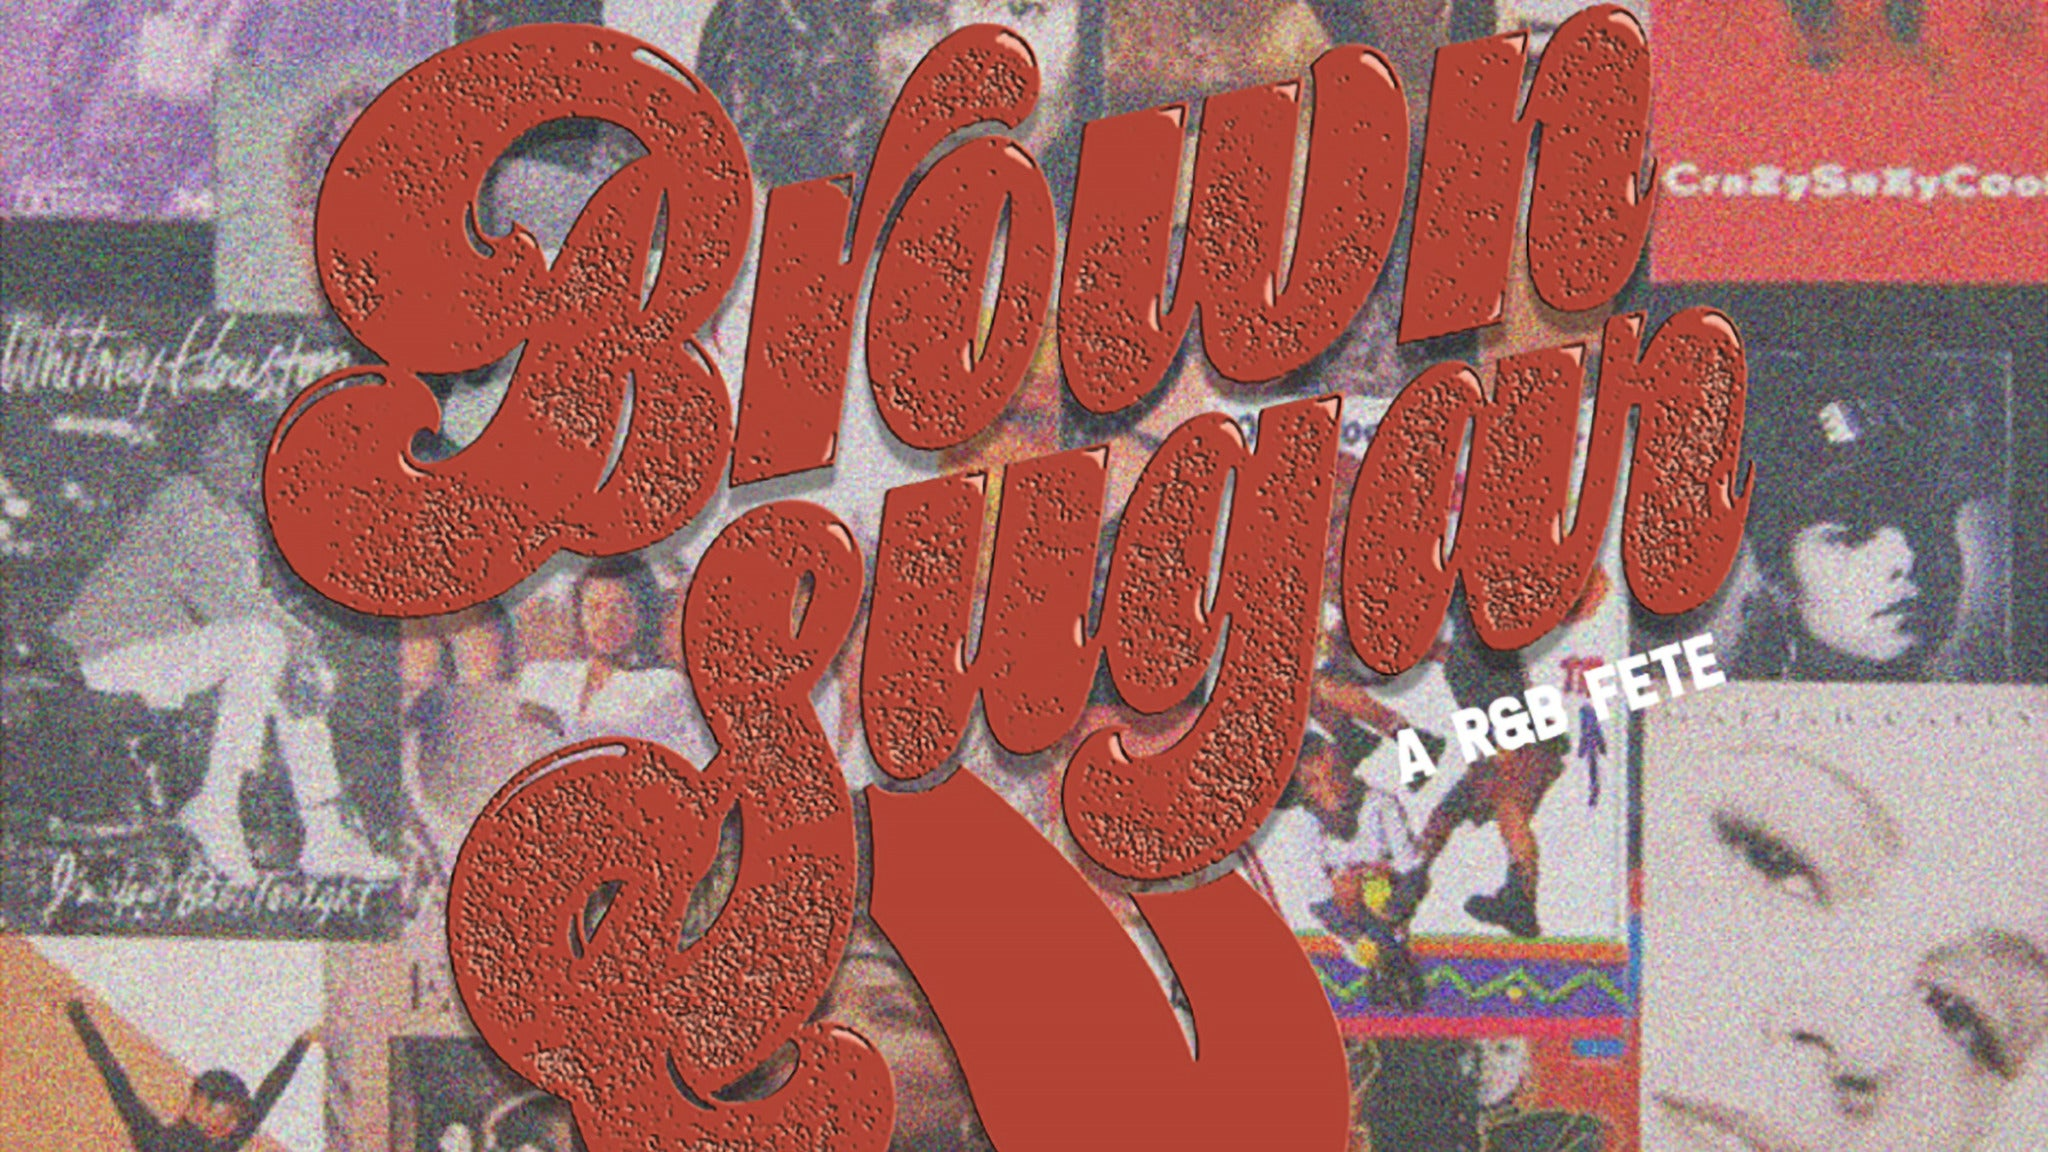 Brown Sugar: An R&b Fête